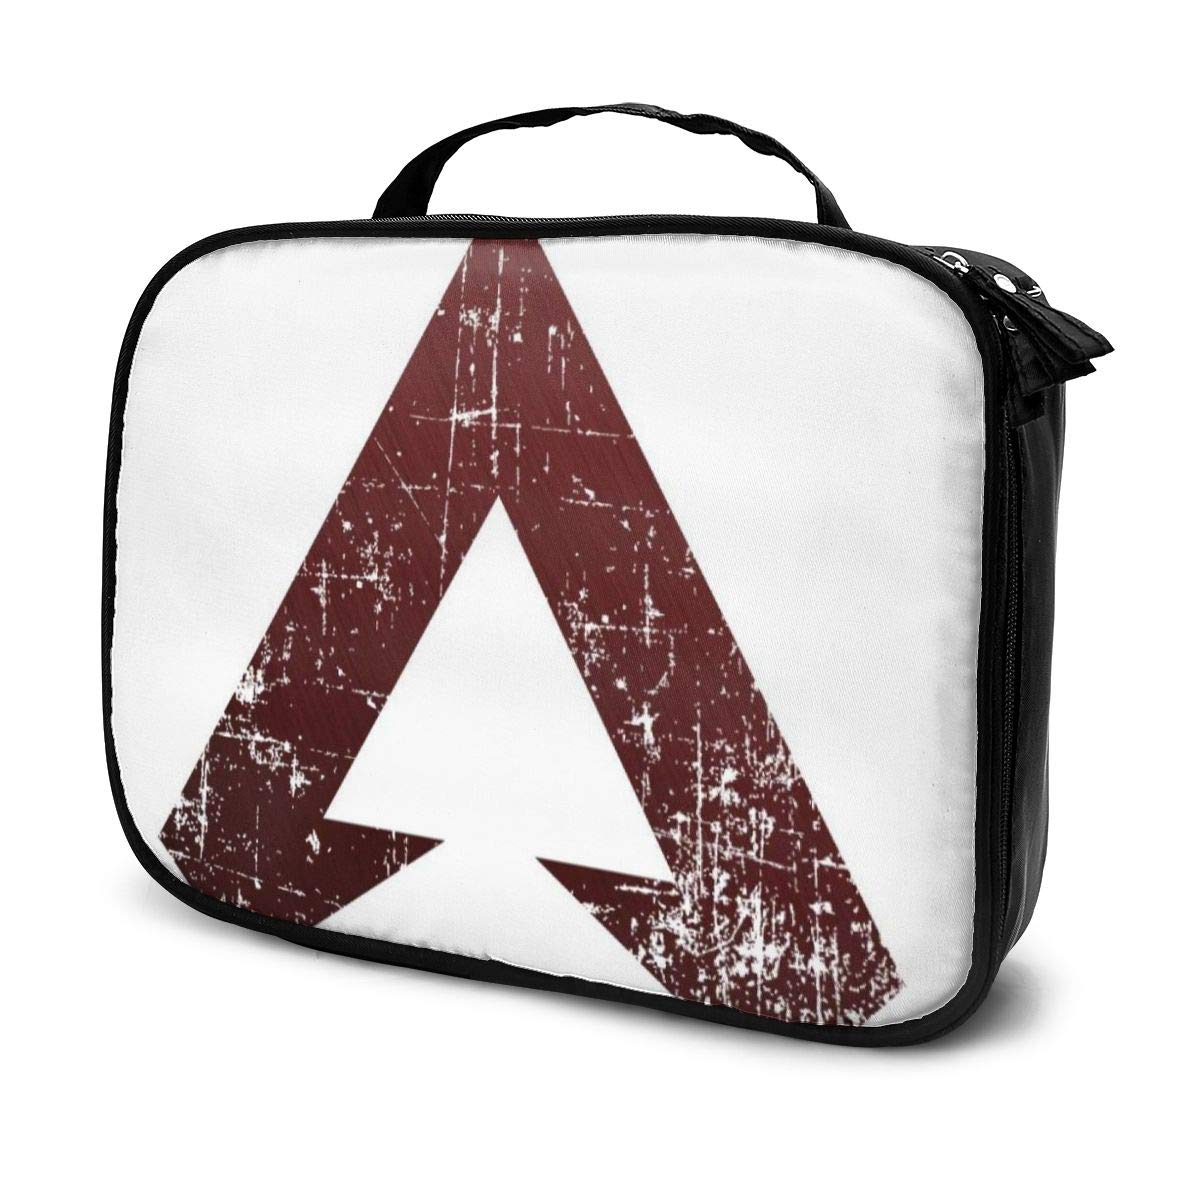 Multi-Functional Bag With Compartments Apex Legends Distressed Logo Professional Cosmetic Pouch Travel Kit Makeup Boxes Makeup Bag